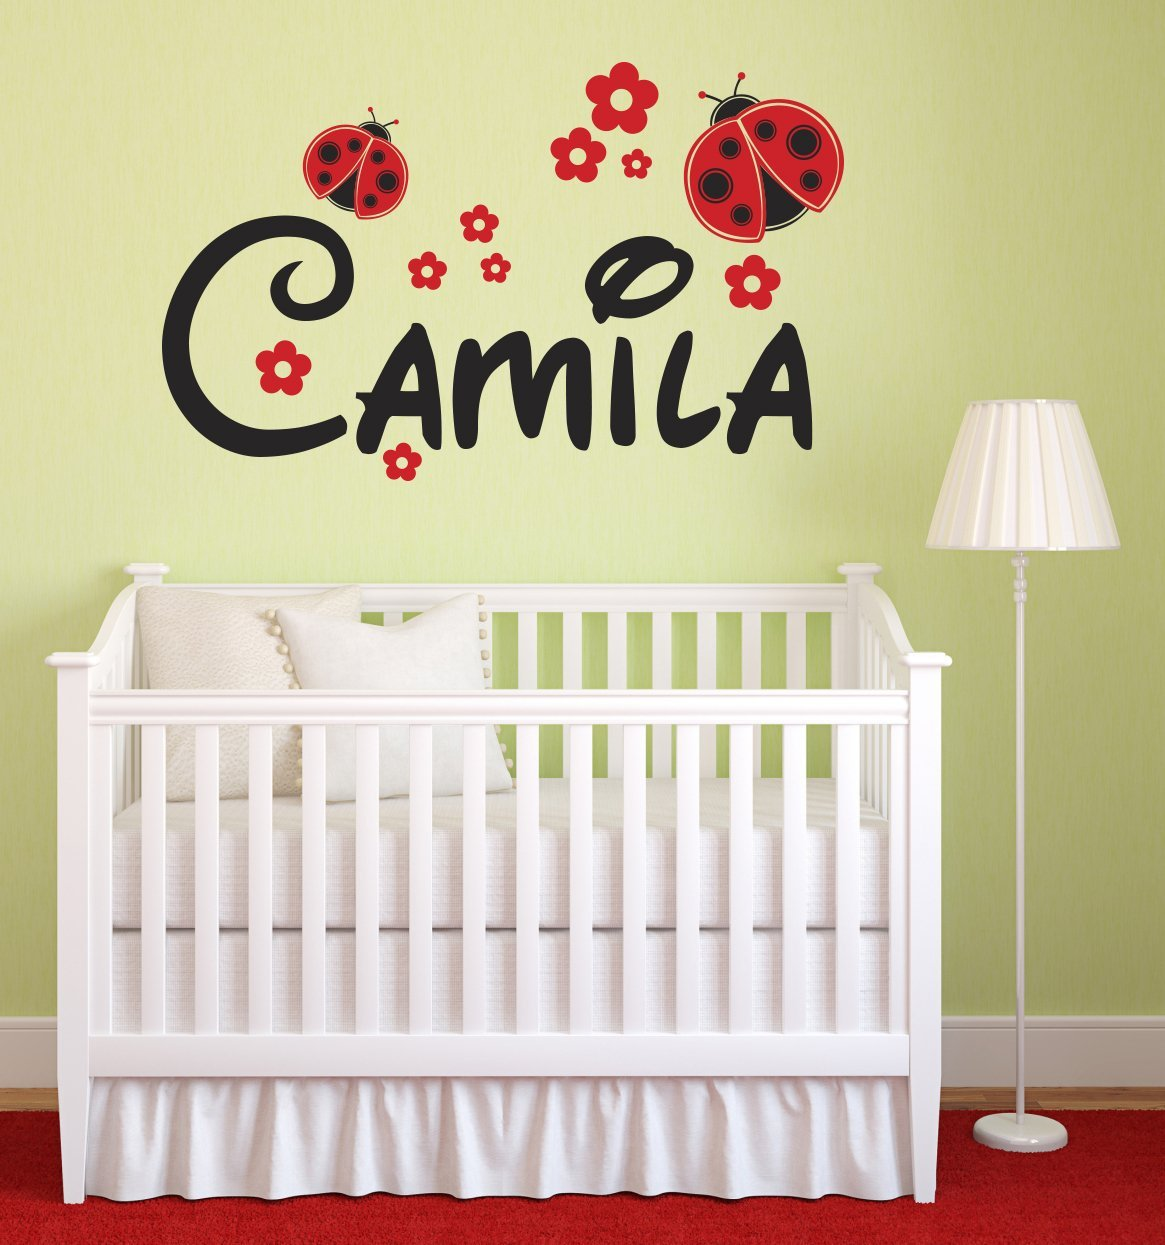 Cheap Ladybug Wall Art, find Ladybug Wall Art deals on line at ...